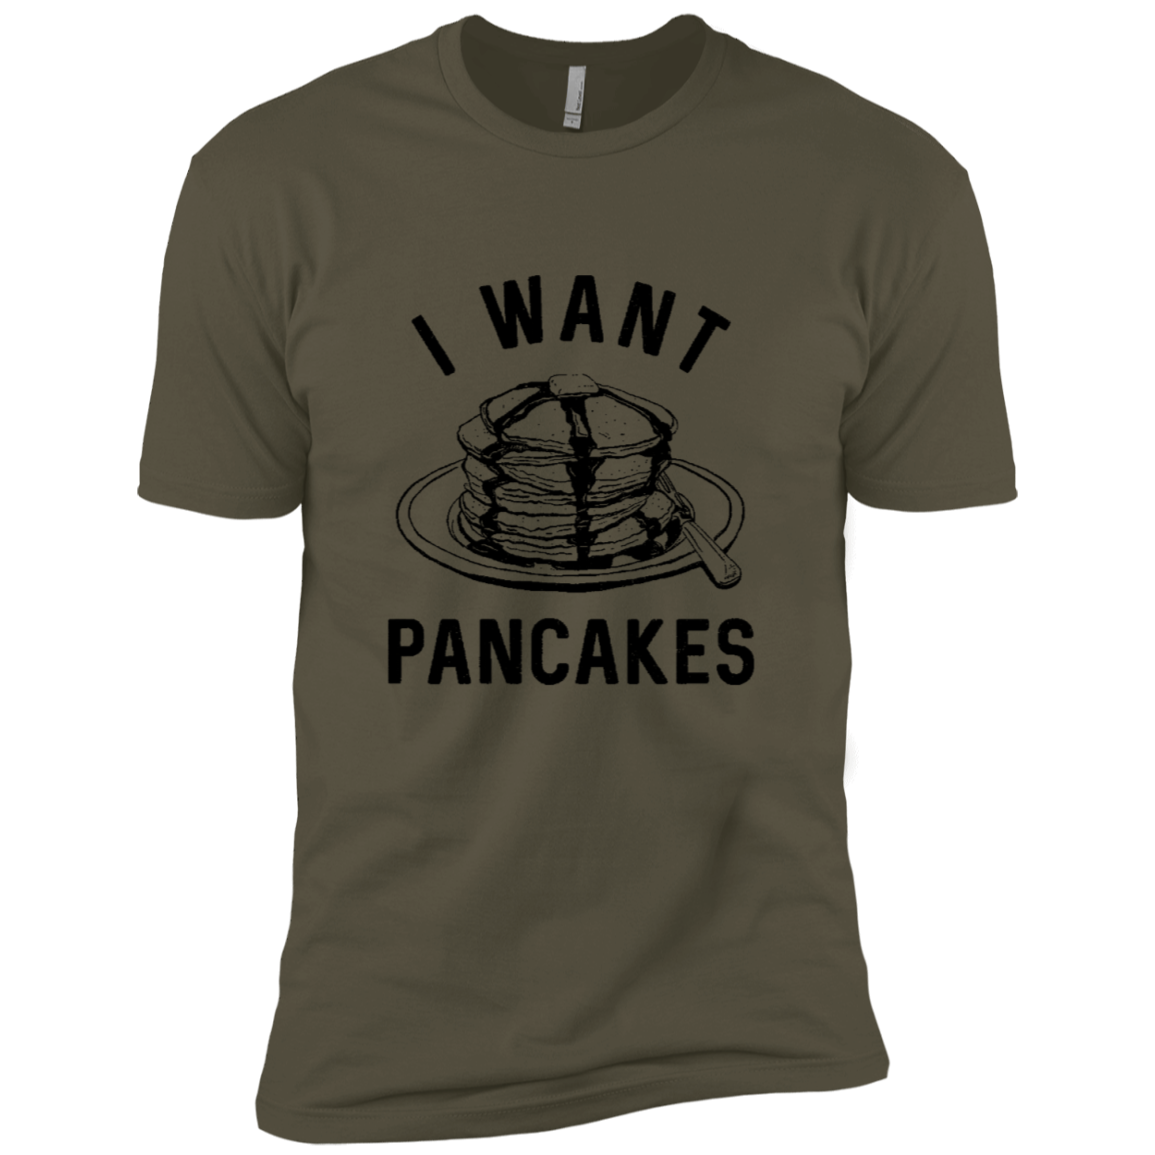 I Want Pancakes Men's Classic Tee